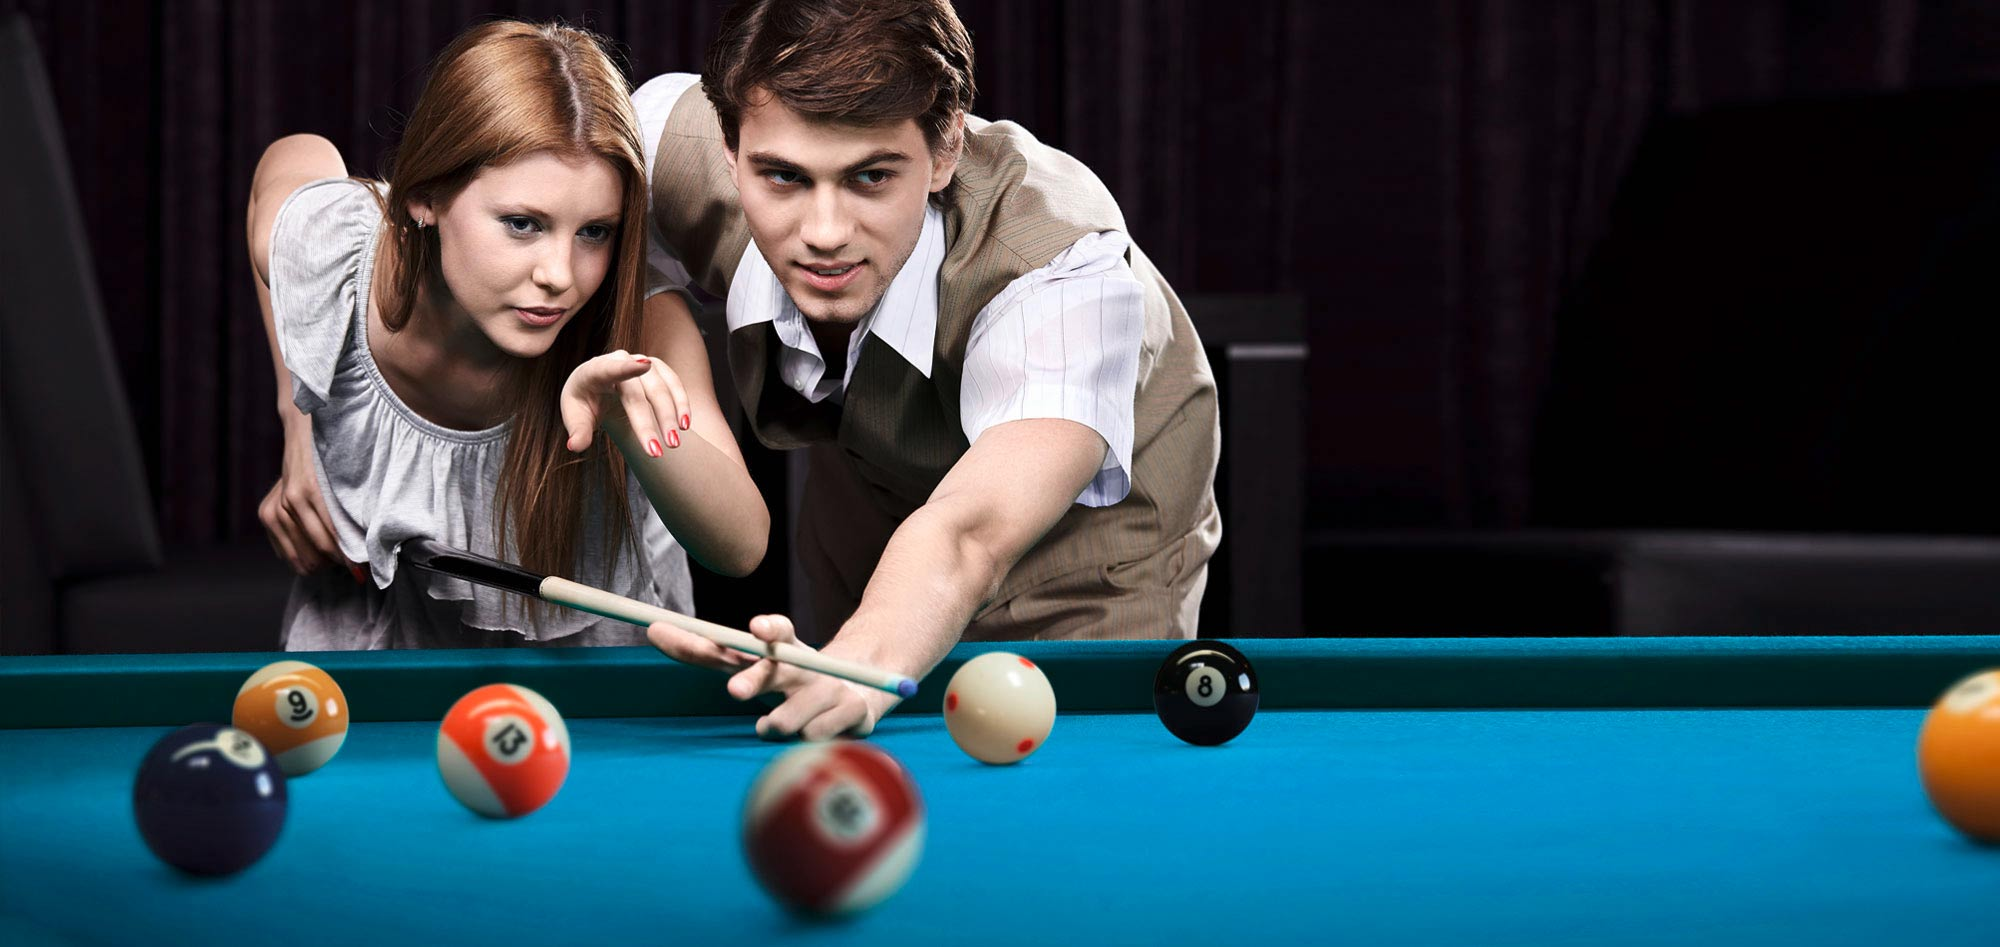 pool_billard_linz